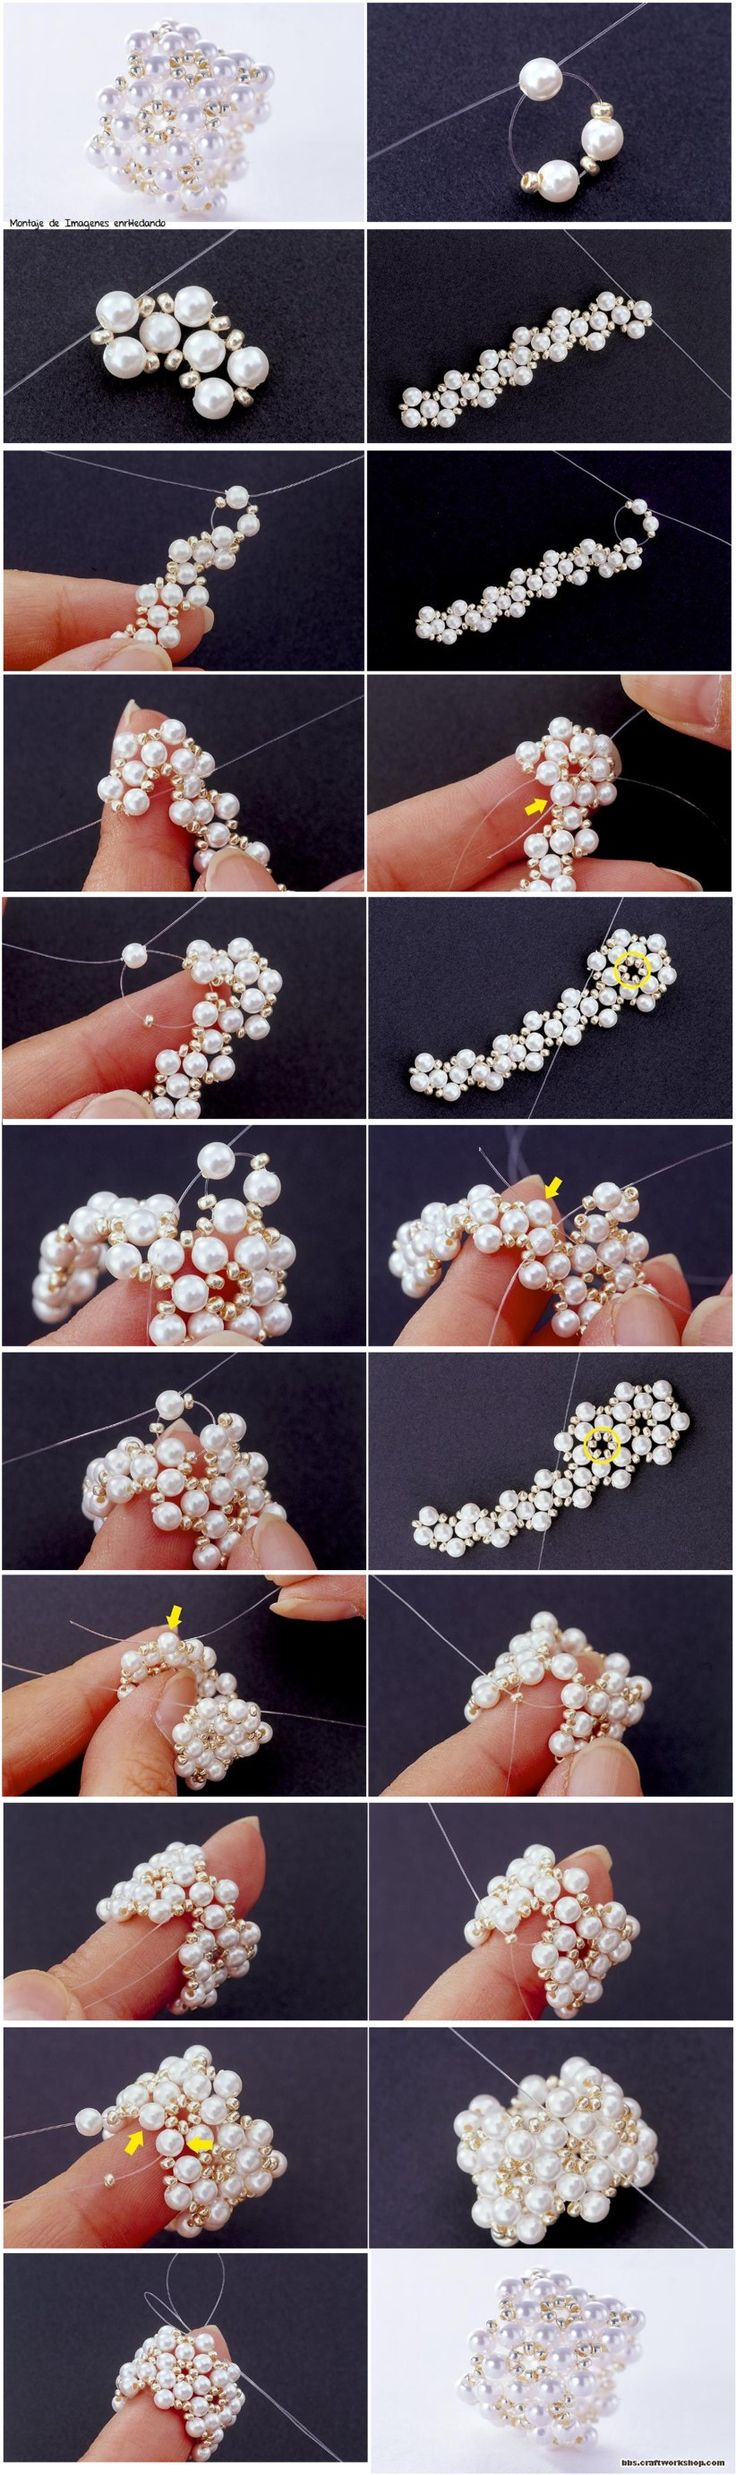 best beaded designs and patterns images on pinterest